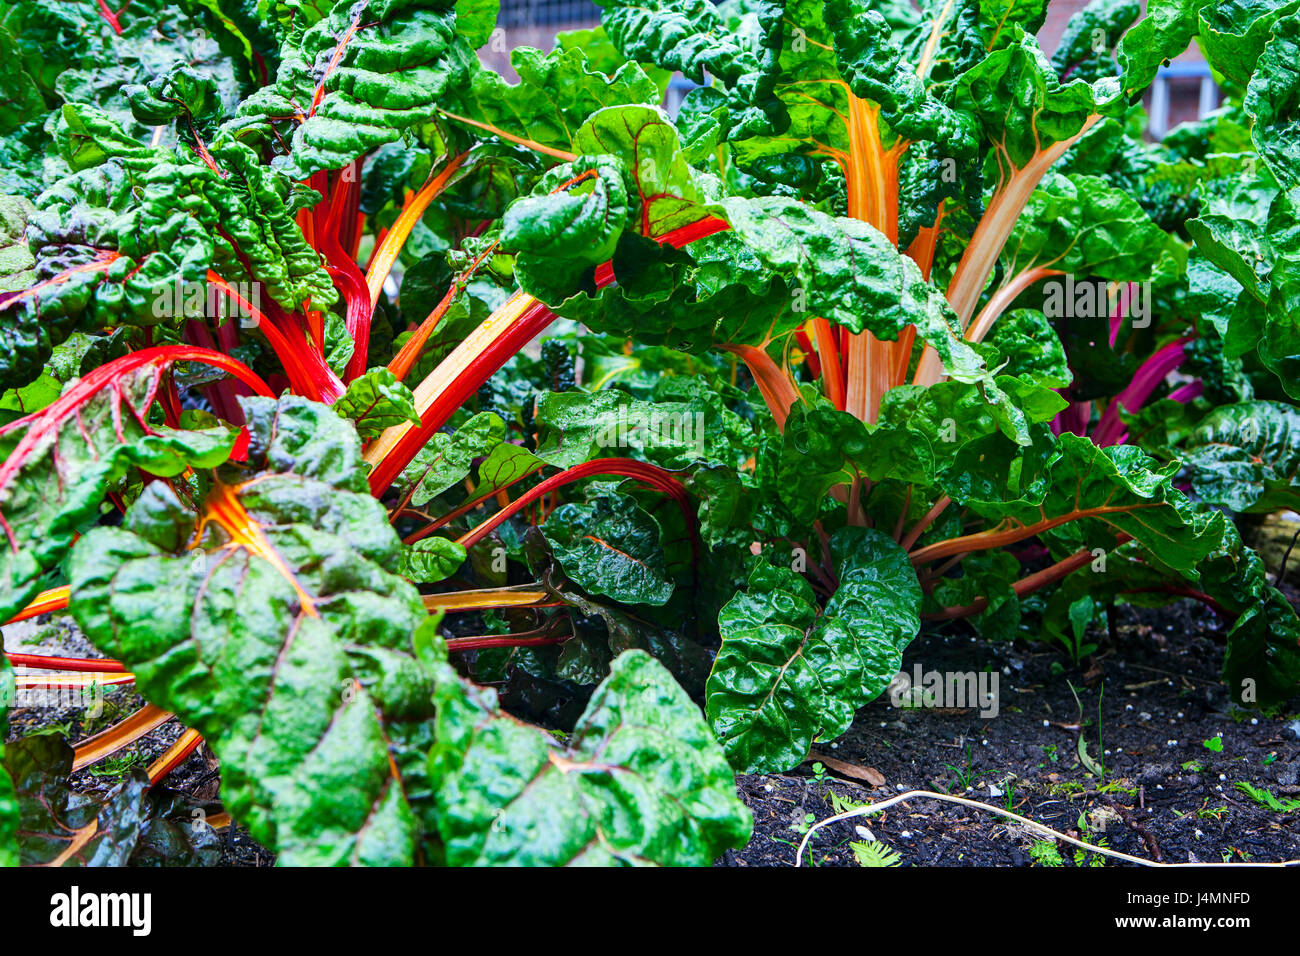 Colorful chard growing at the allotment - Stock Image